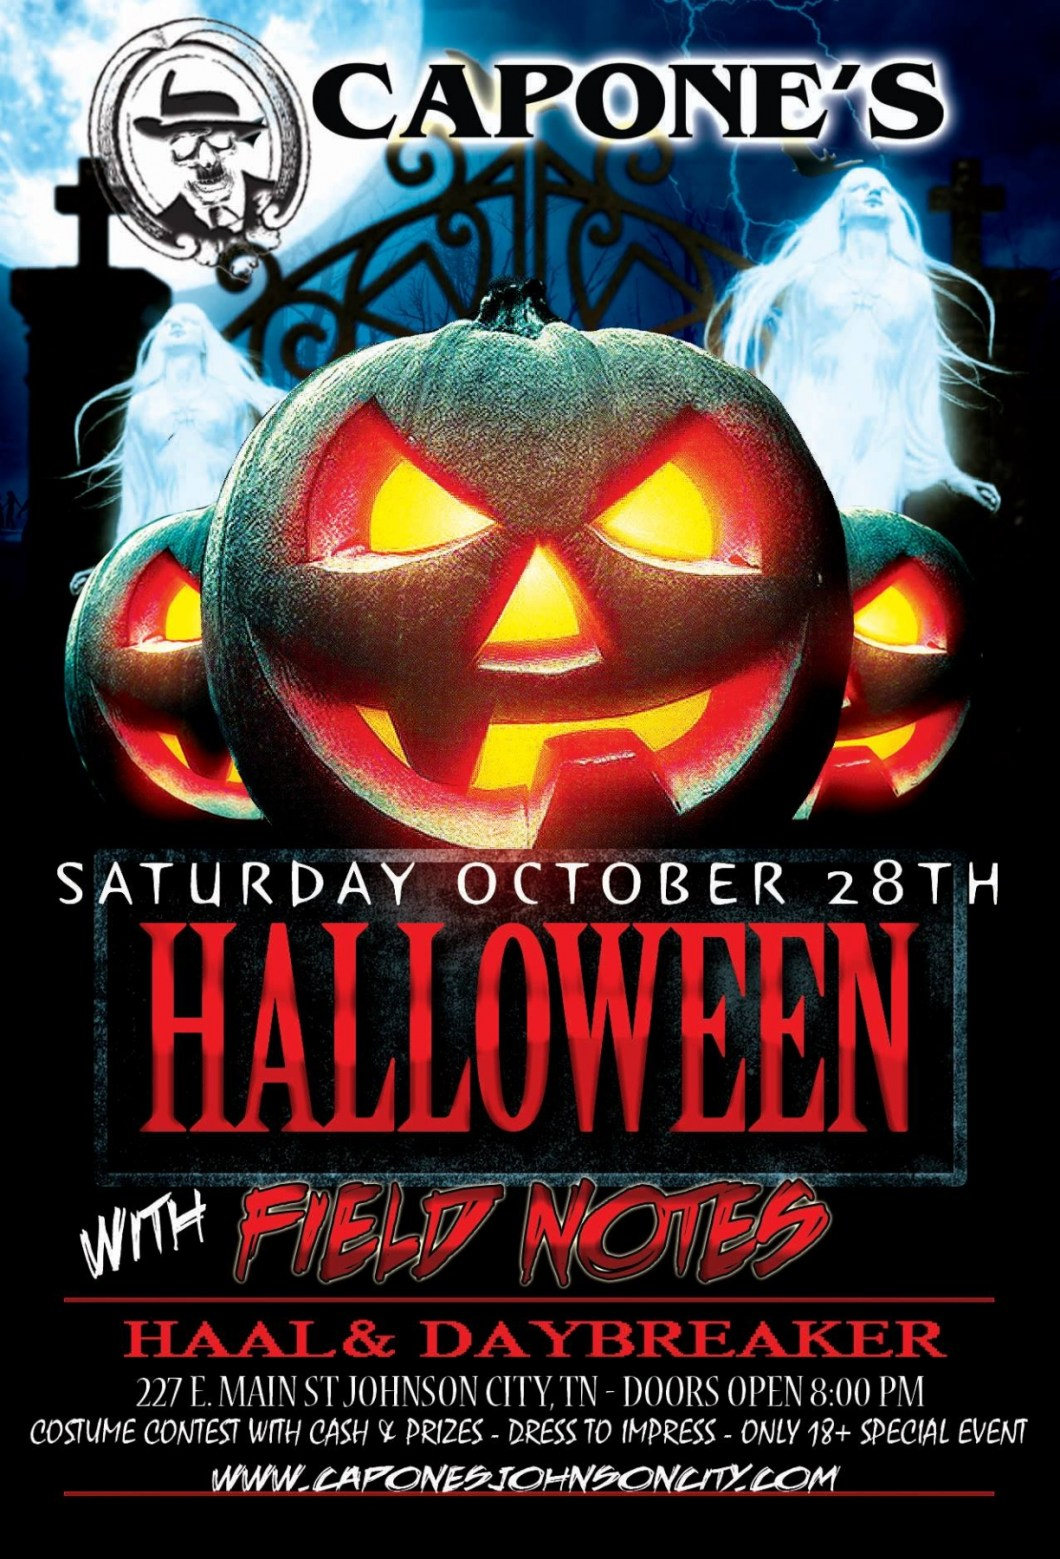 halloween show field notes with haal and daybreaker at capone s